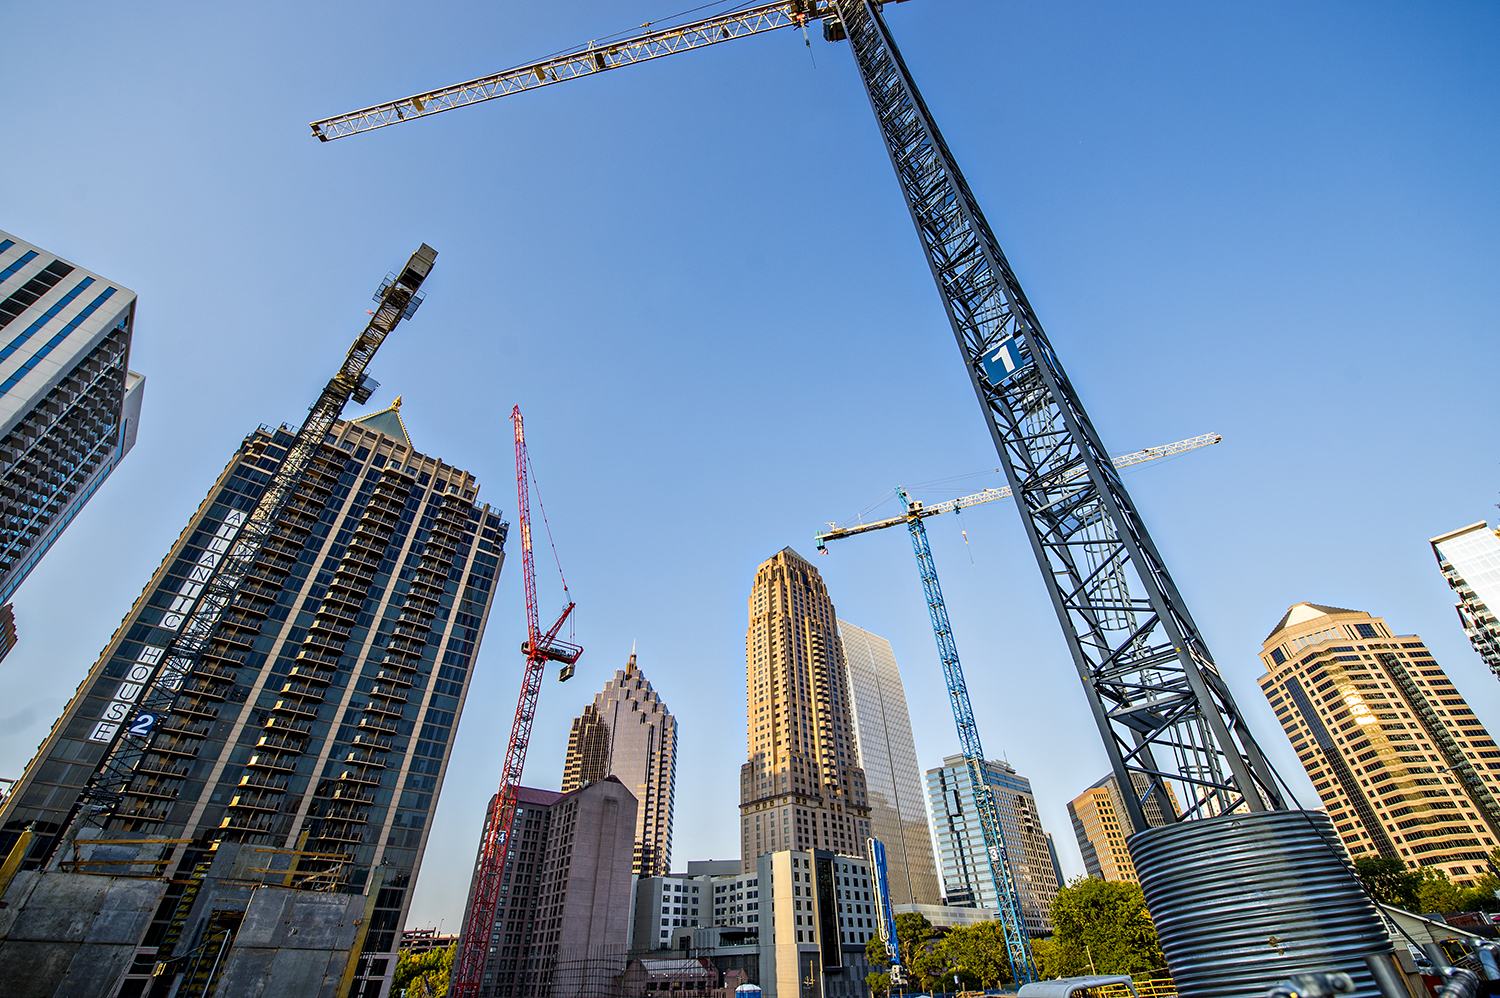 A blue sky with several construction cranes set against it and exiting tall buildings.